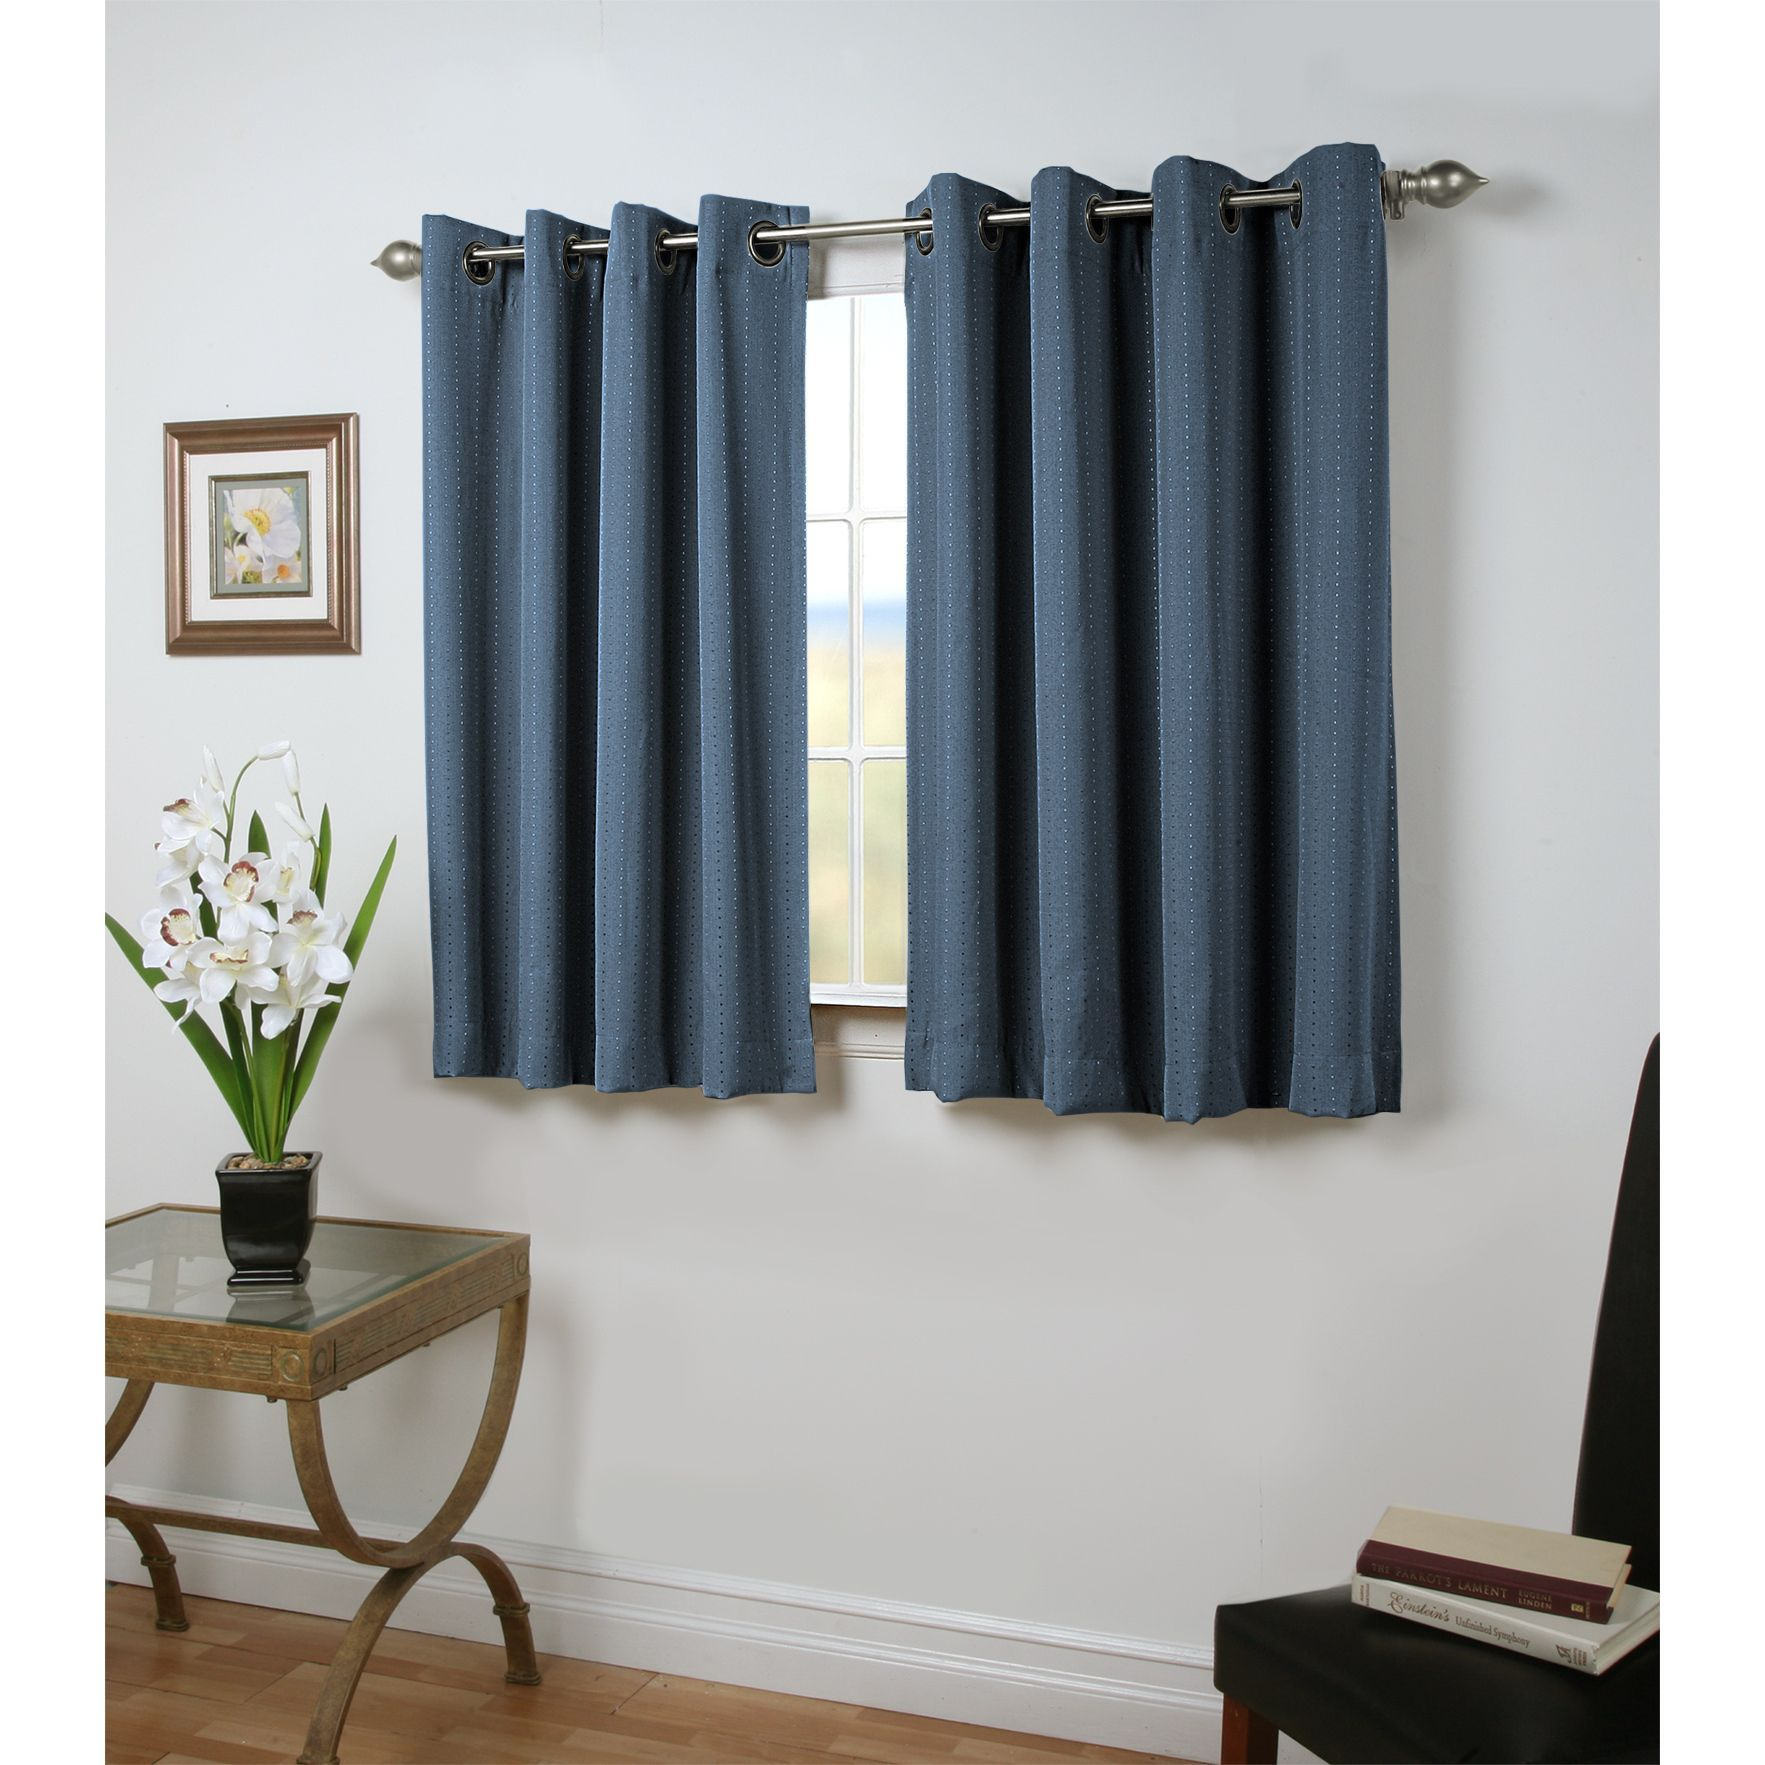 rod panel curtain unforgettable curtains pocket front side rods sidelight for doors inspirations blinds inch length